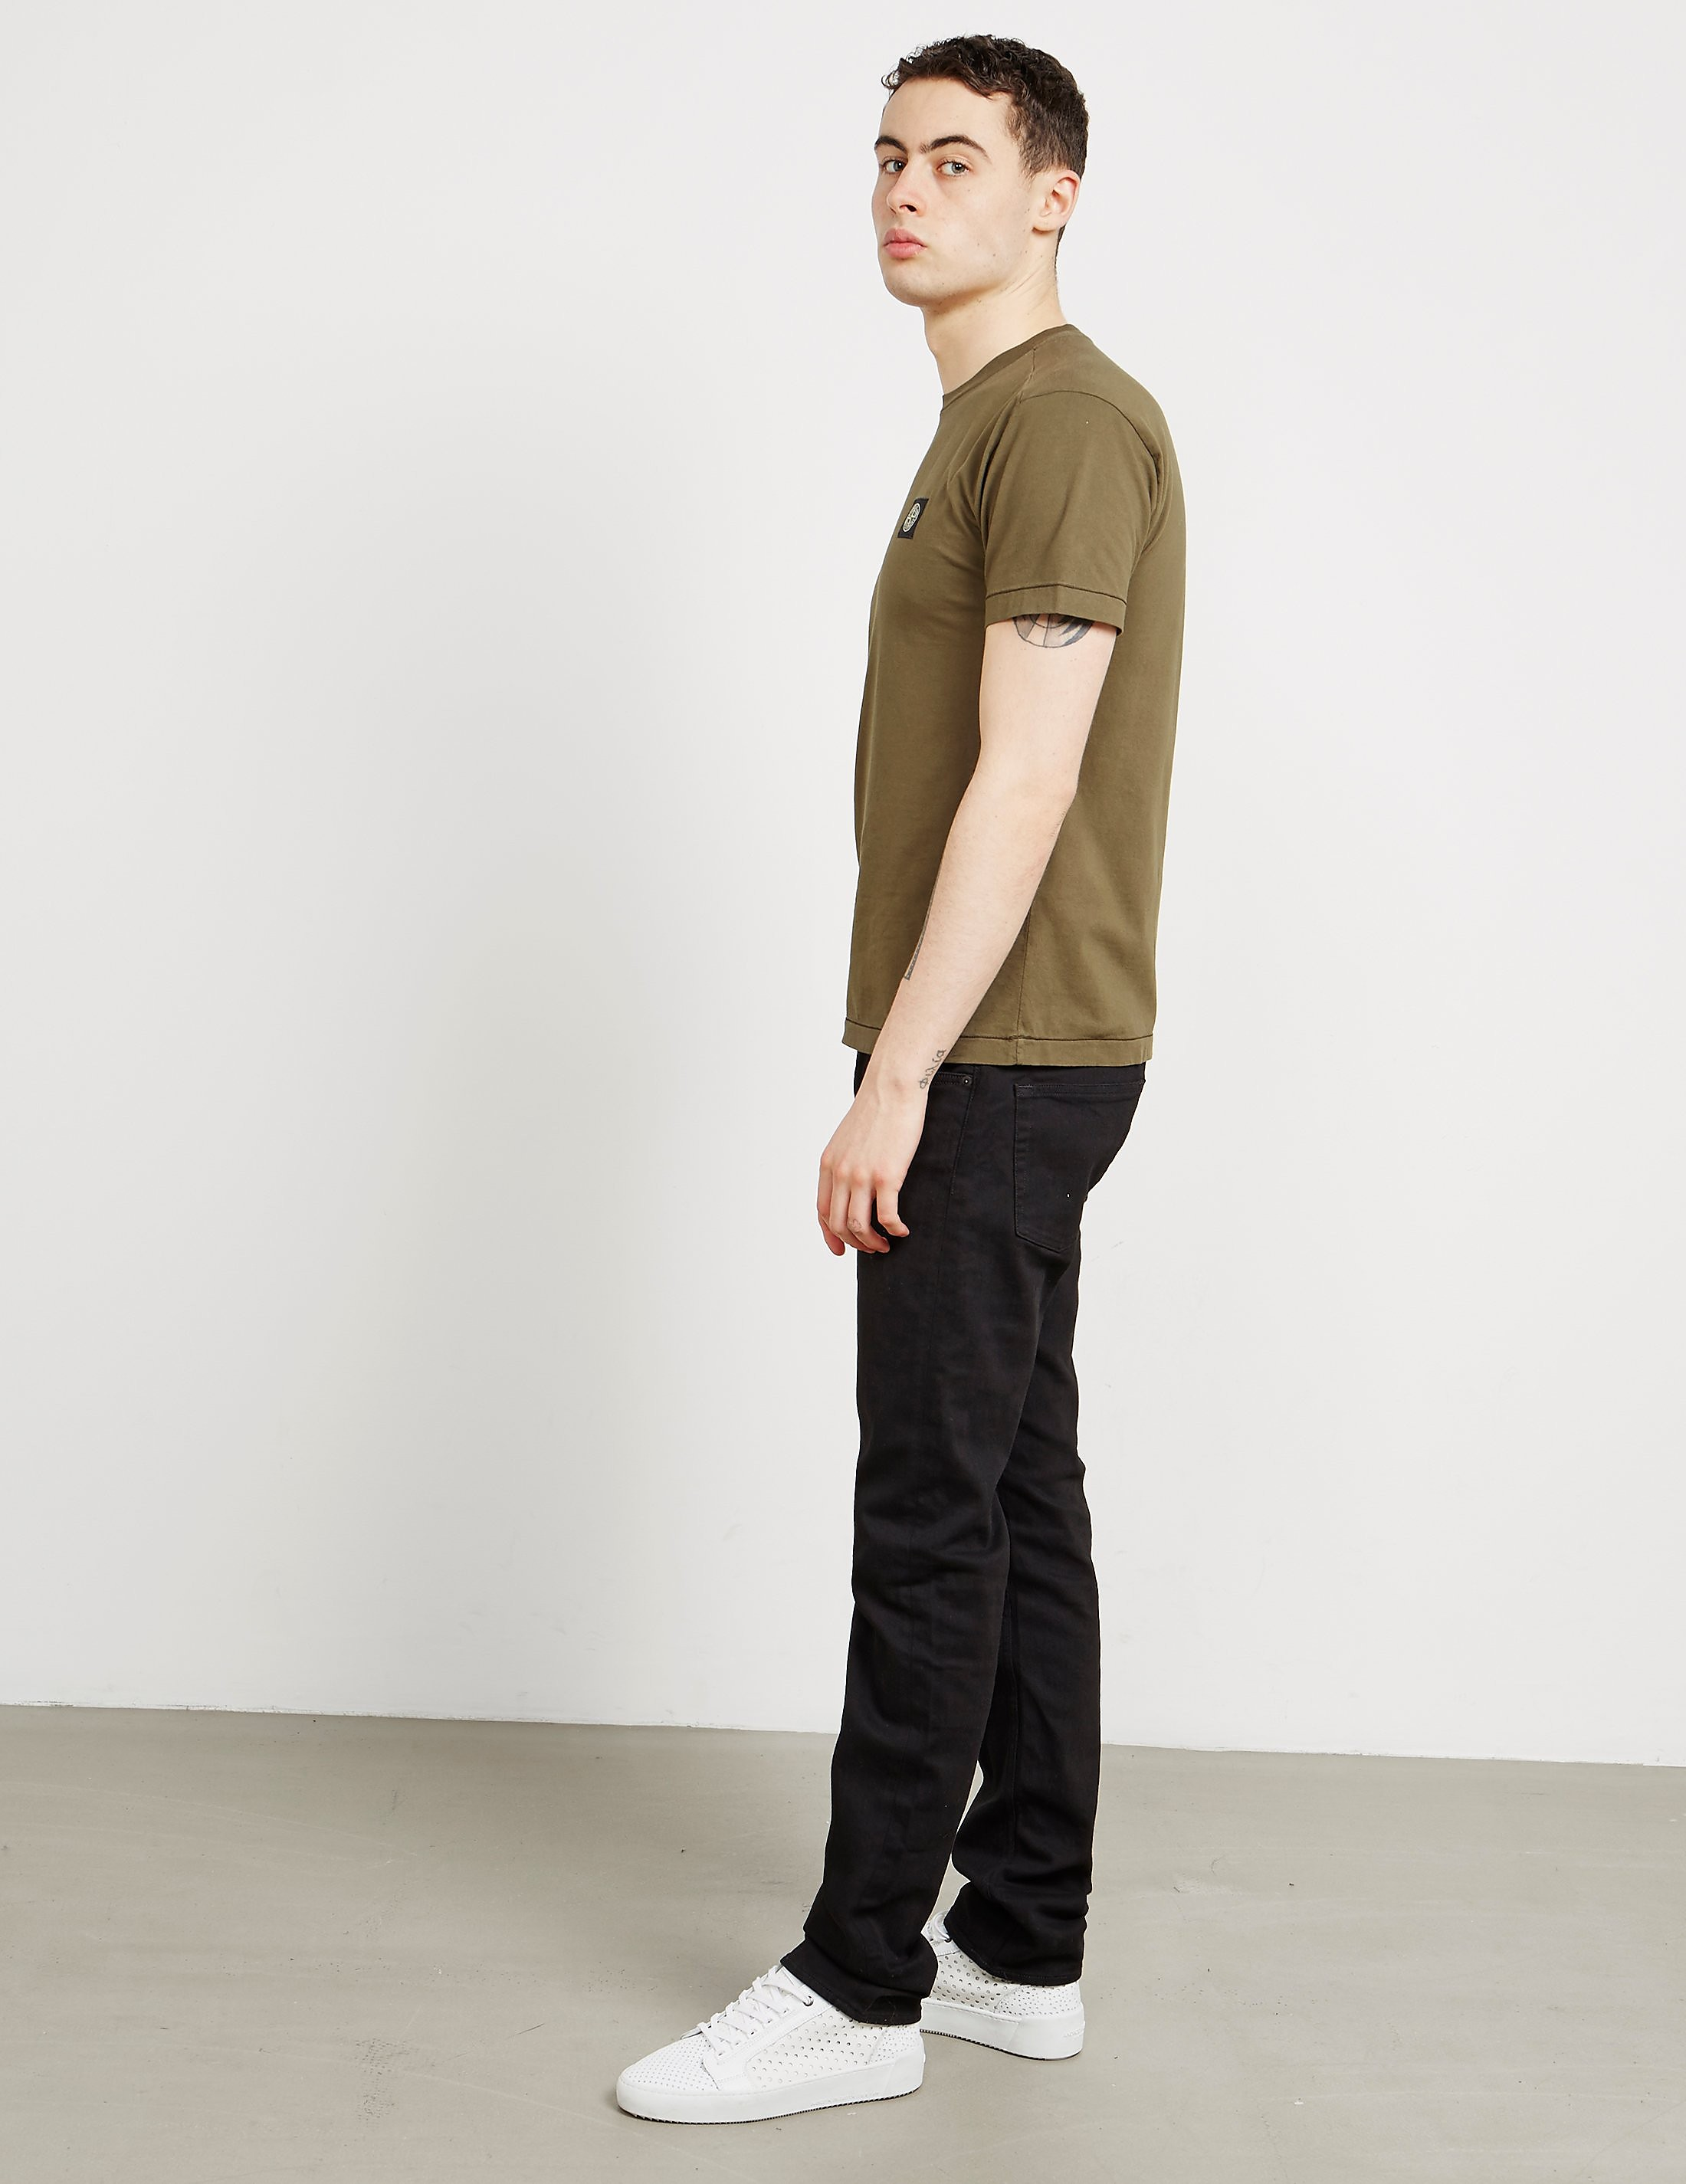 Stone Island Straight Leg Slim Fit Jeans